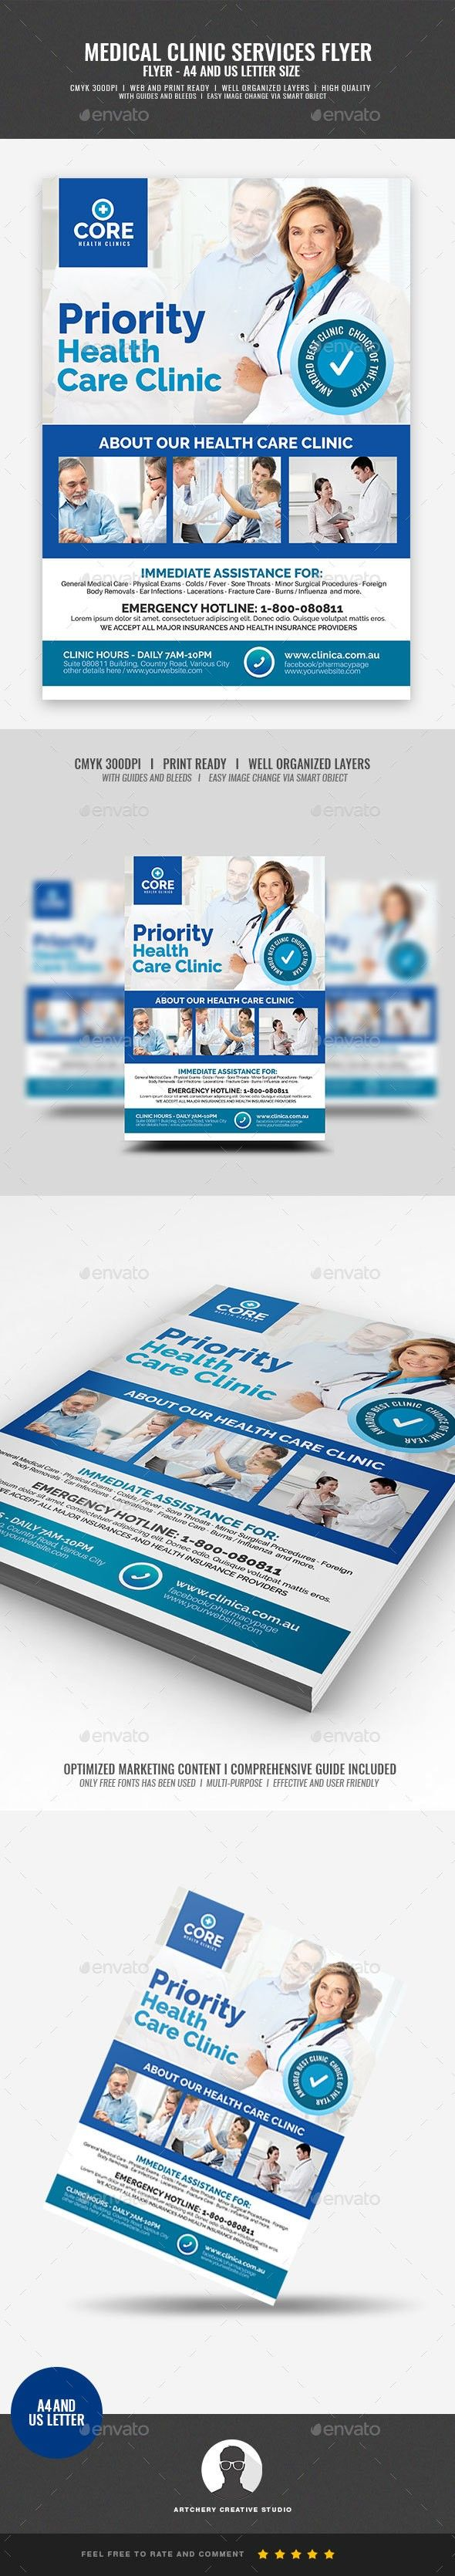 Healthcare-Advertising-advertisement-blue-care-clean-clinic-cure-doctor-emergency-family-doctor Healthcare Advertising : advertisement, blue, care, clean, clinic, cure, doctor, emergency, family doctor...